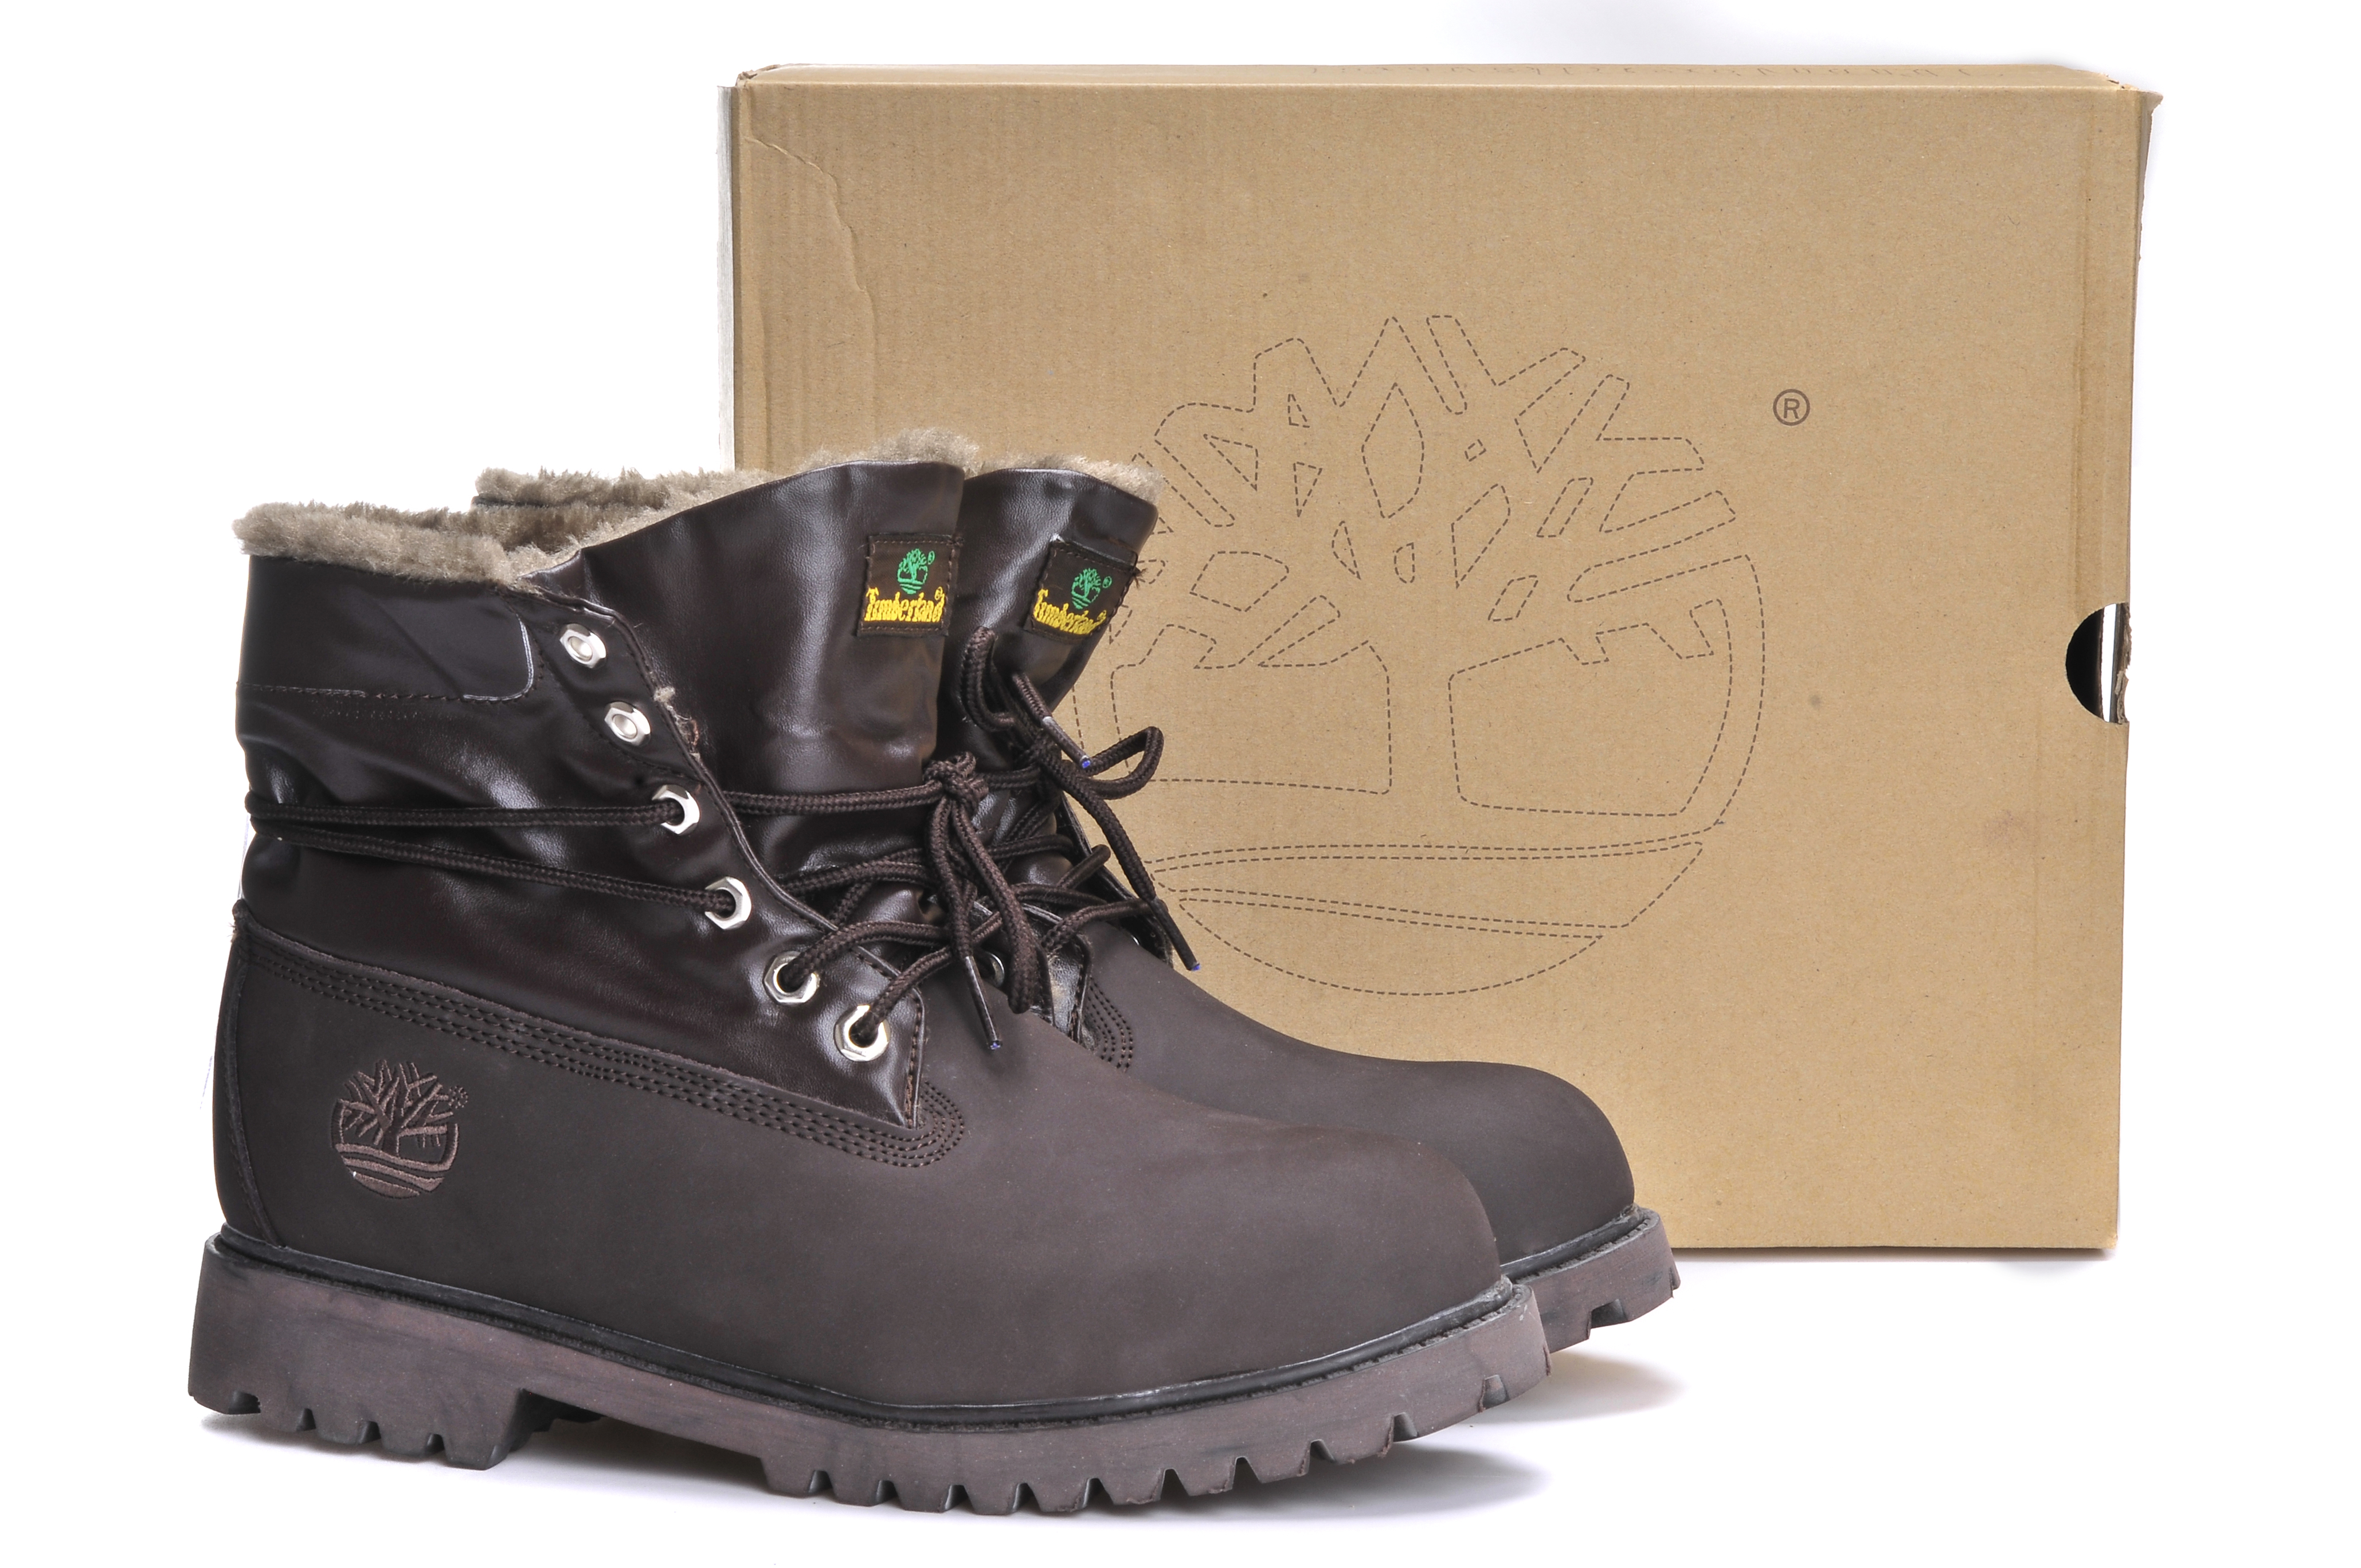 Homme Timberland timberland Pas Boots botte Cher Homme Homme